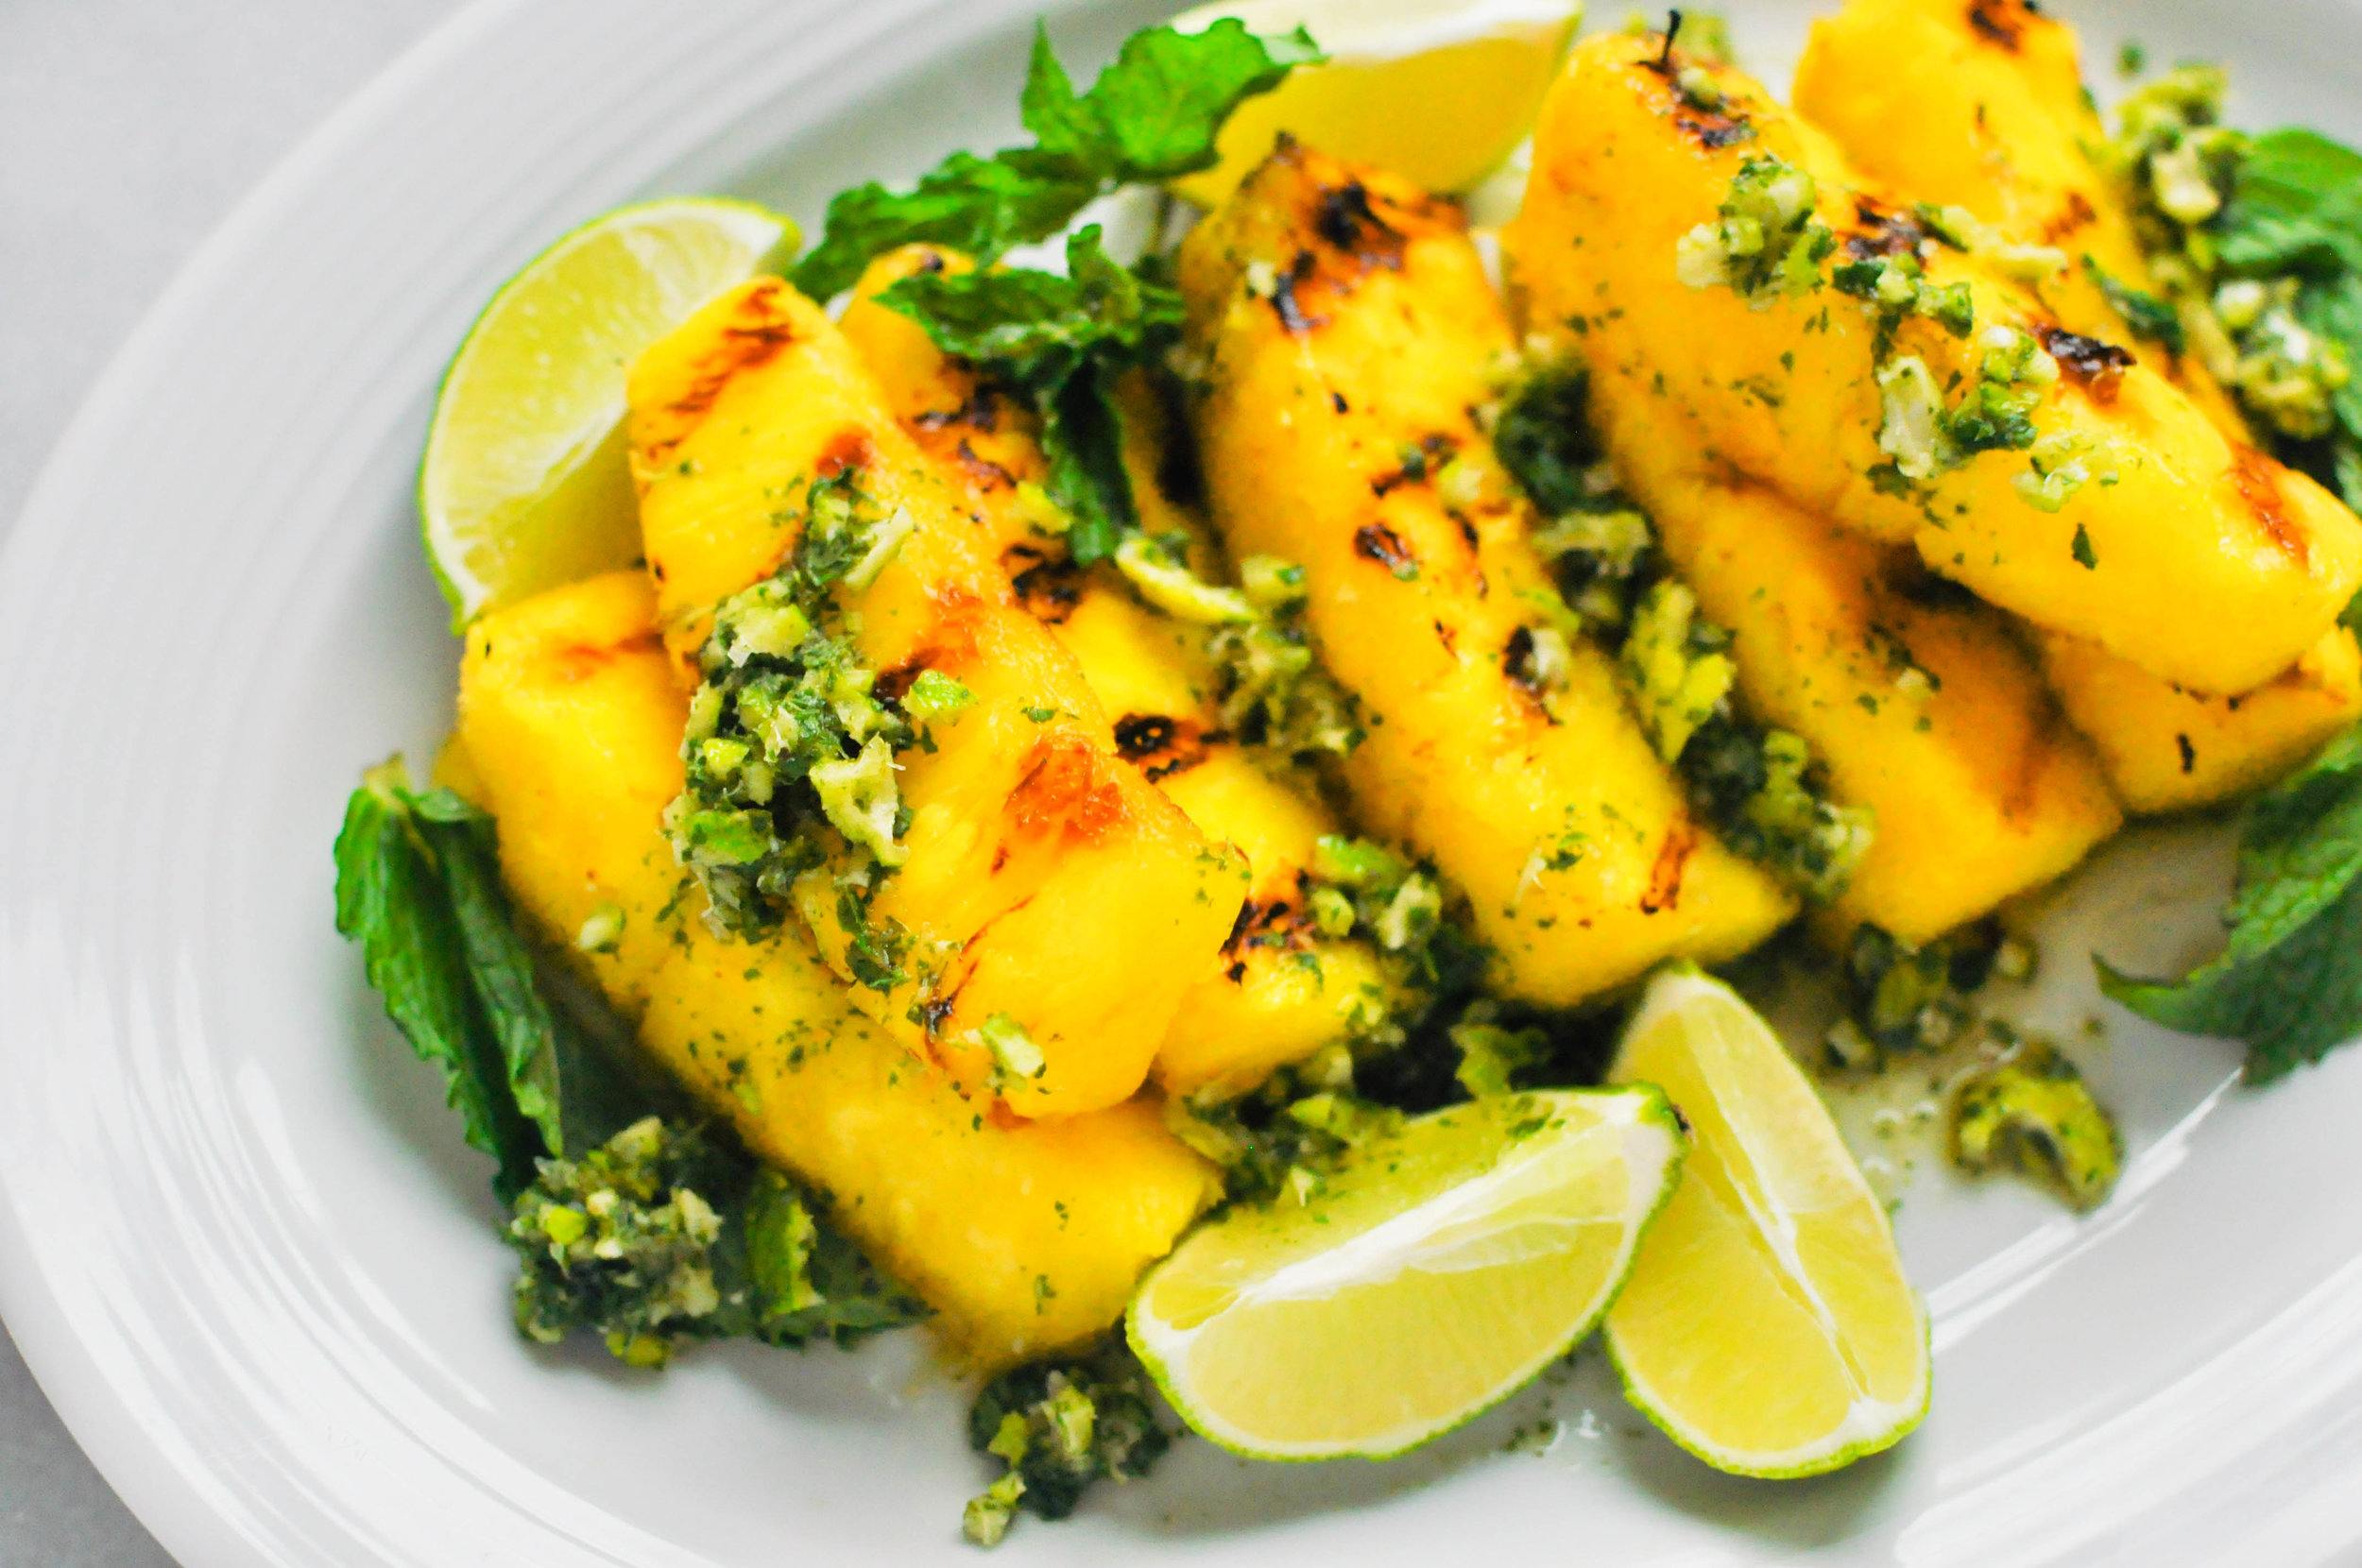 Grilled Pineapple with Lime Mint Sauce | This Healthy Table